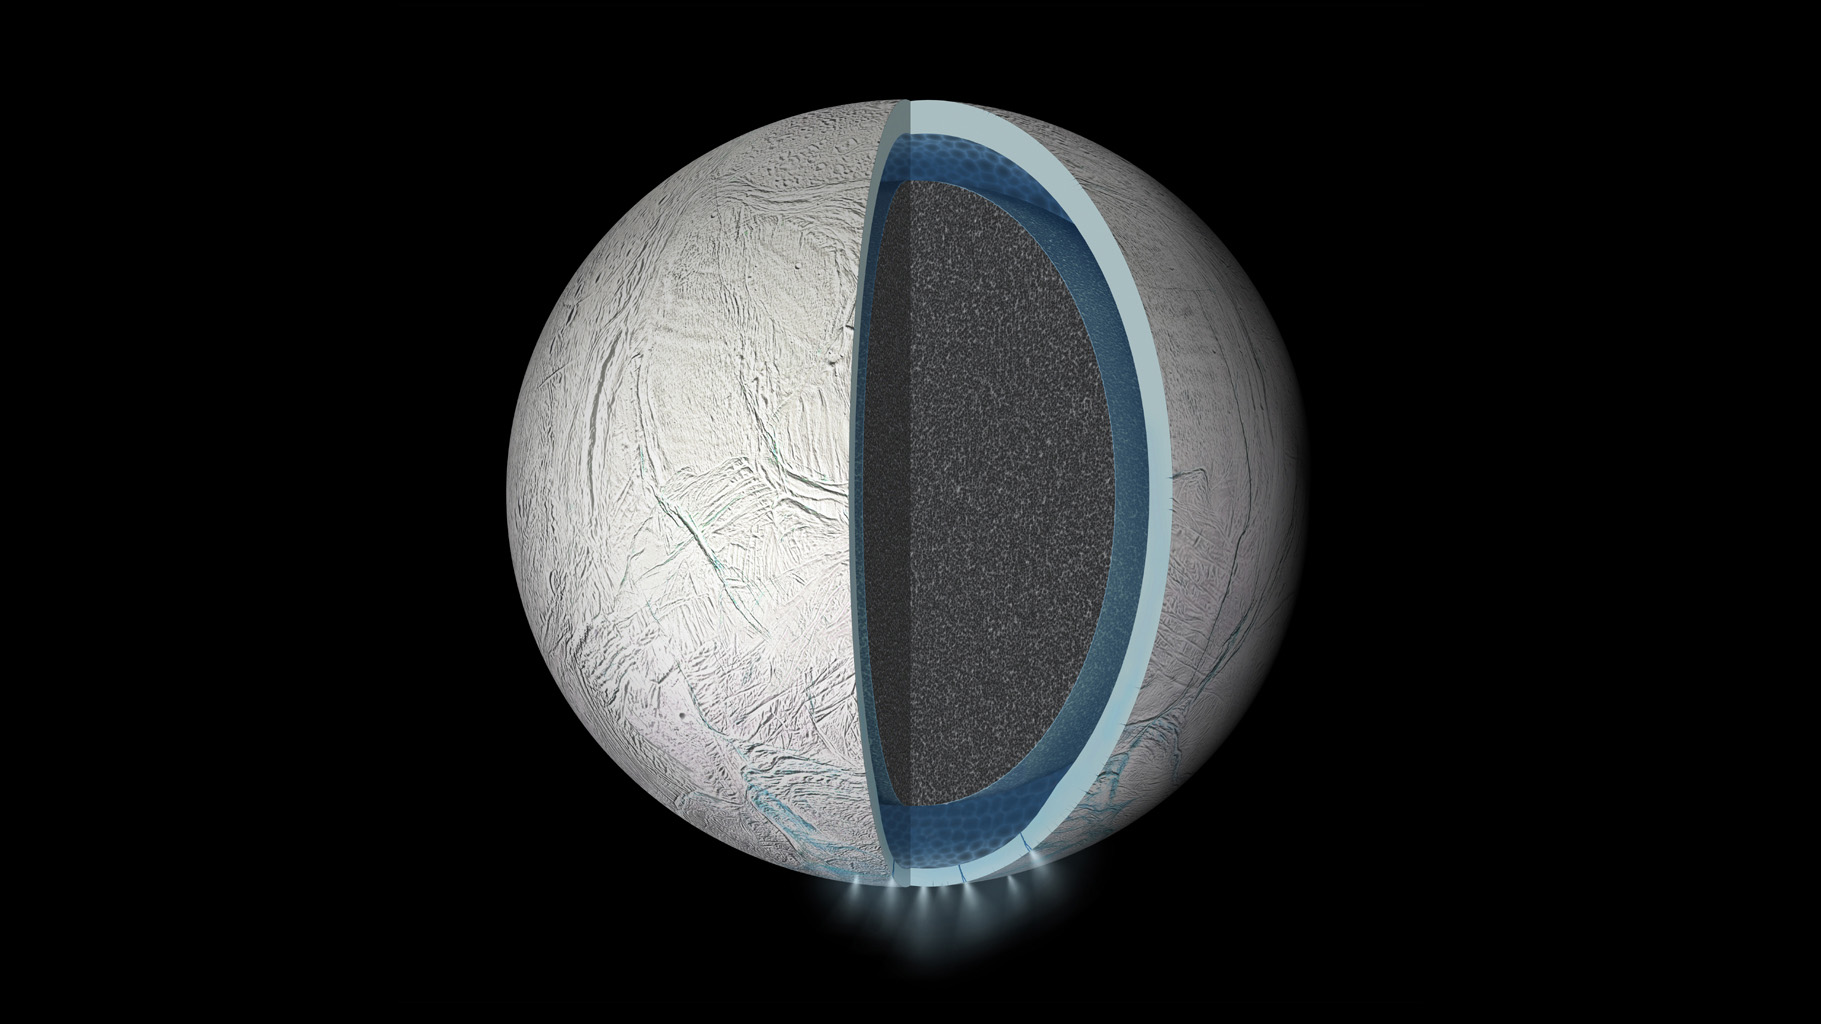 This illustration based on data from NASA's Cassini spacecraft is of the interior of Saturn's moon Enceladus showing a global liquid water ocean between its rocky core and icy crust.